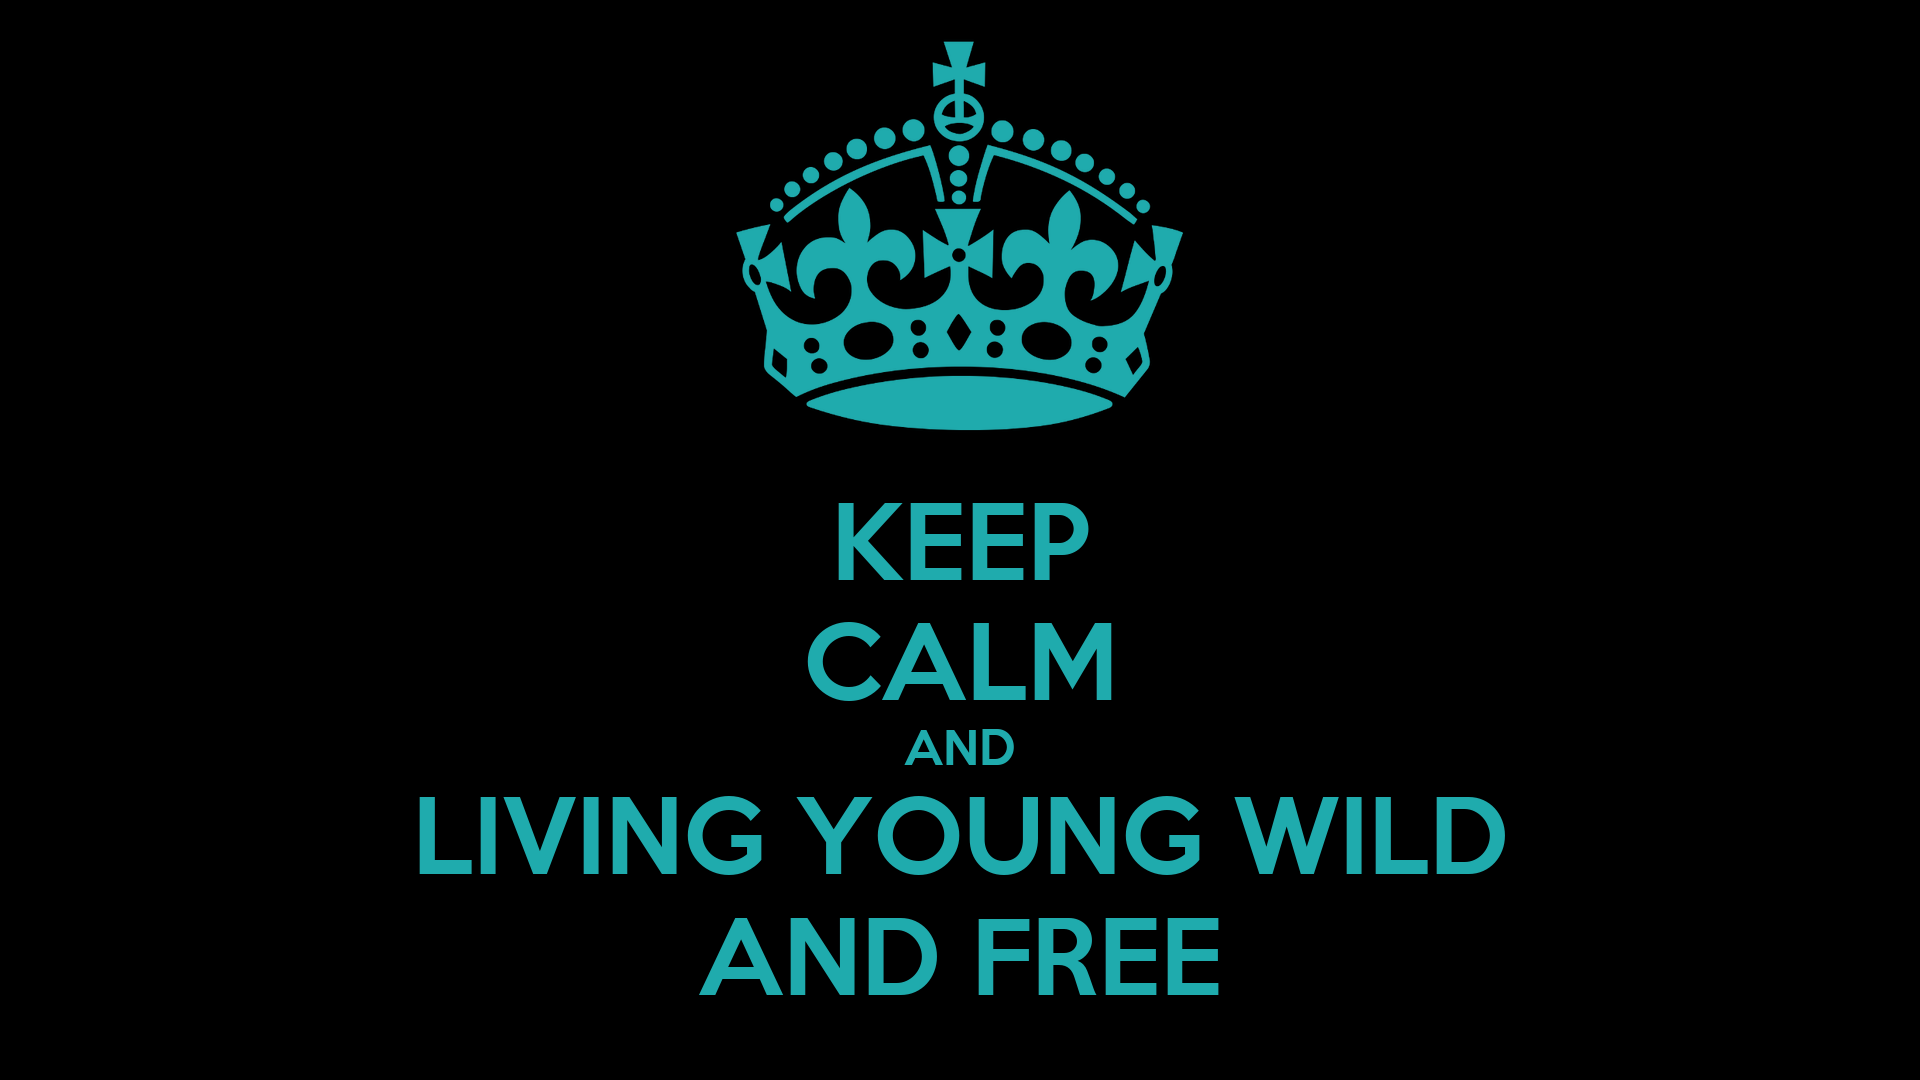 Keep Calm And Living Young Wild And Free Poster Illias